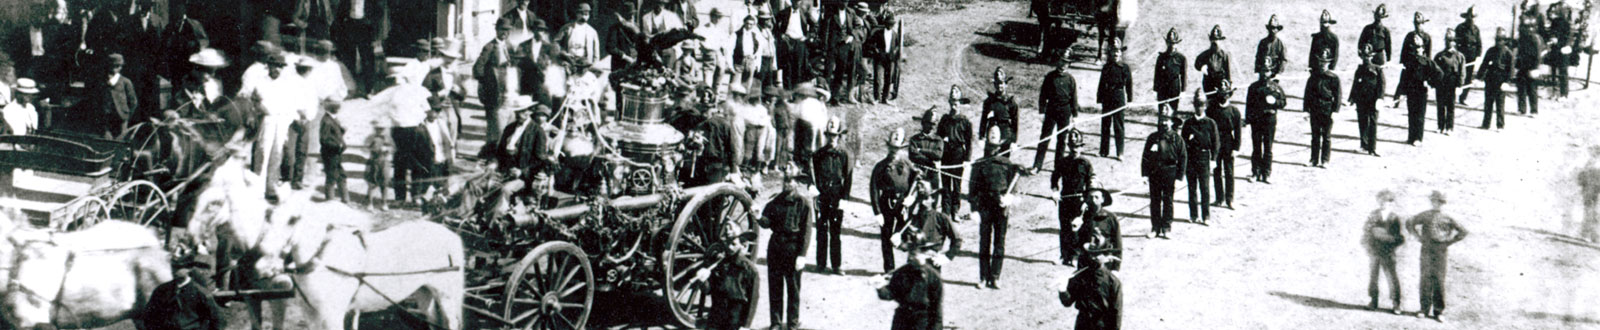 Historical photo of LAFD with horse-drawn vehicles